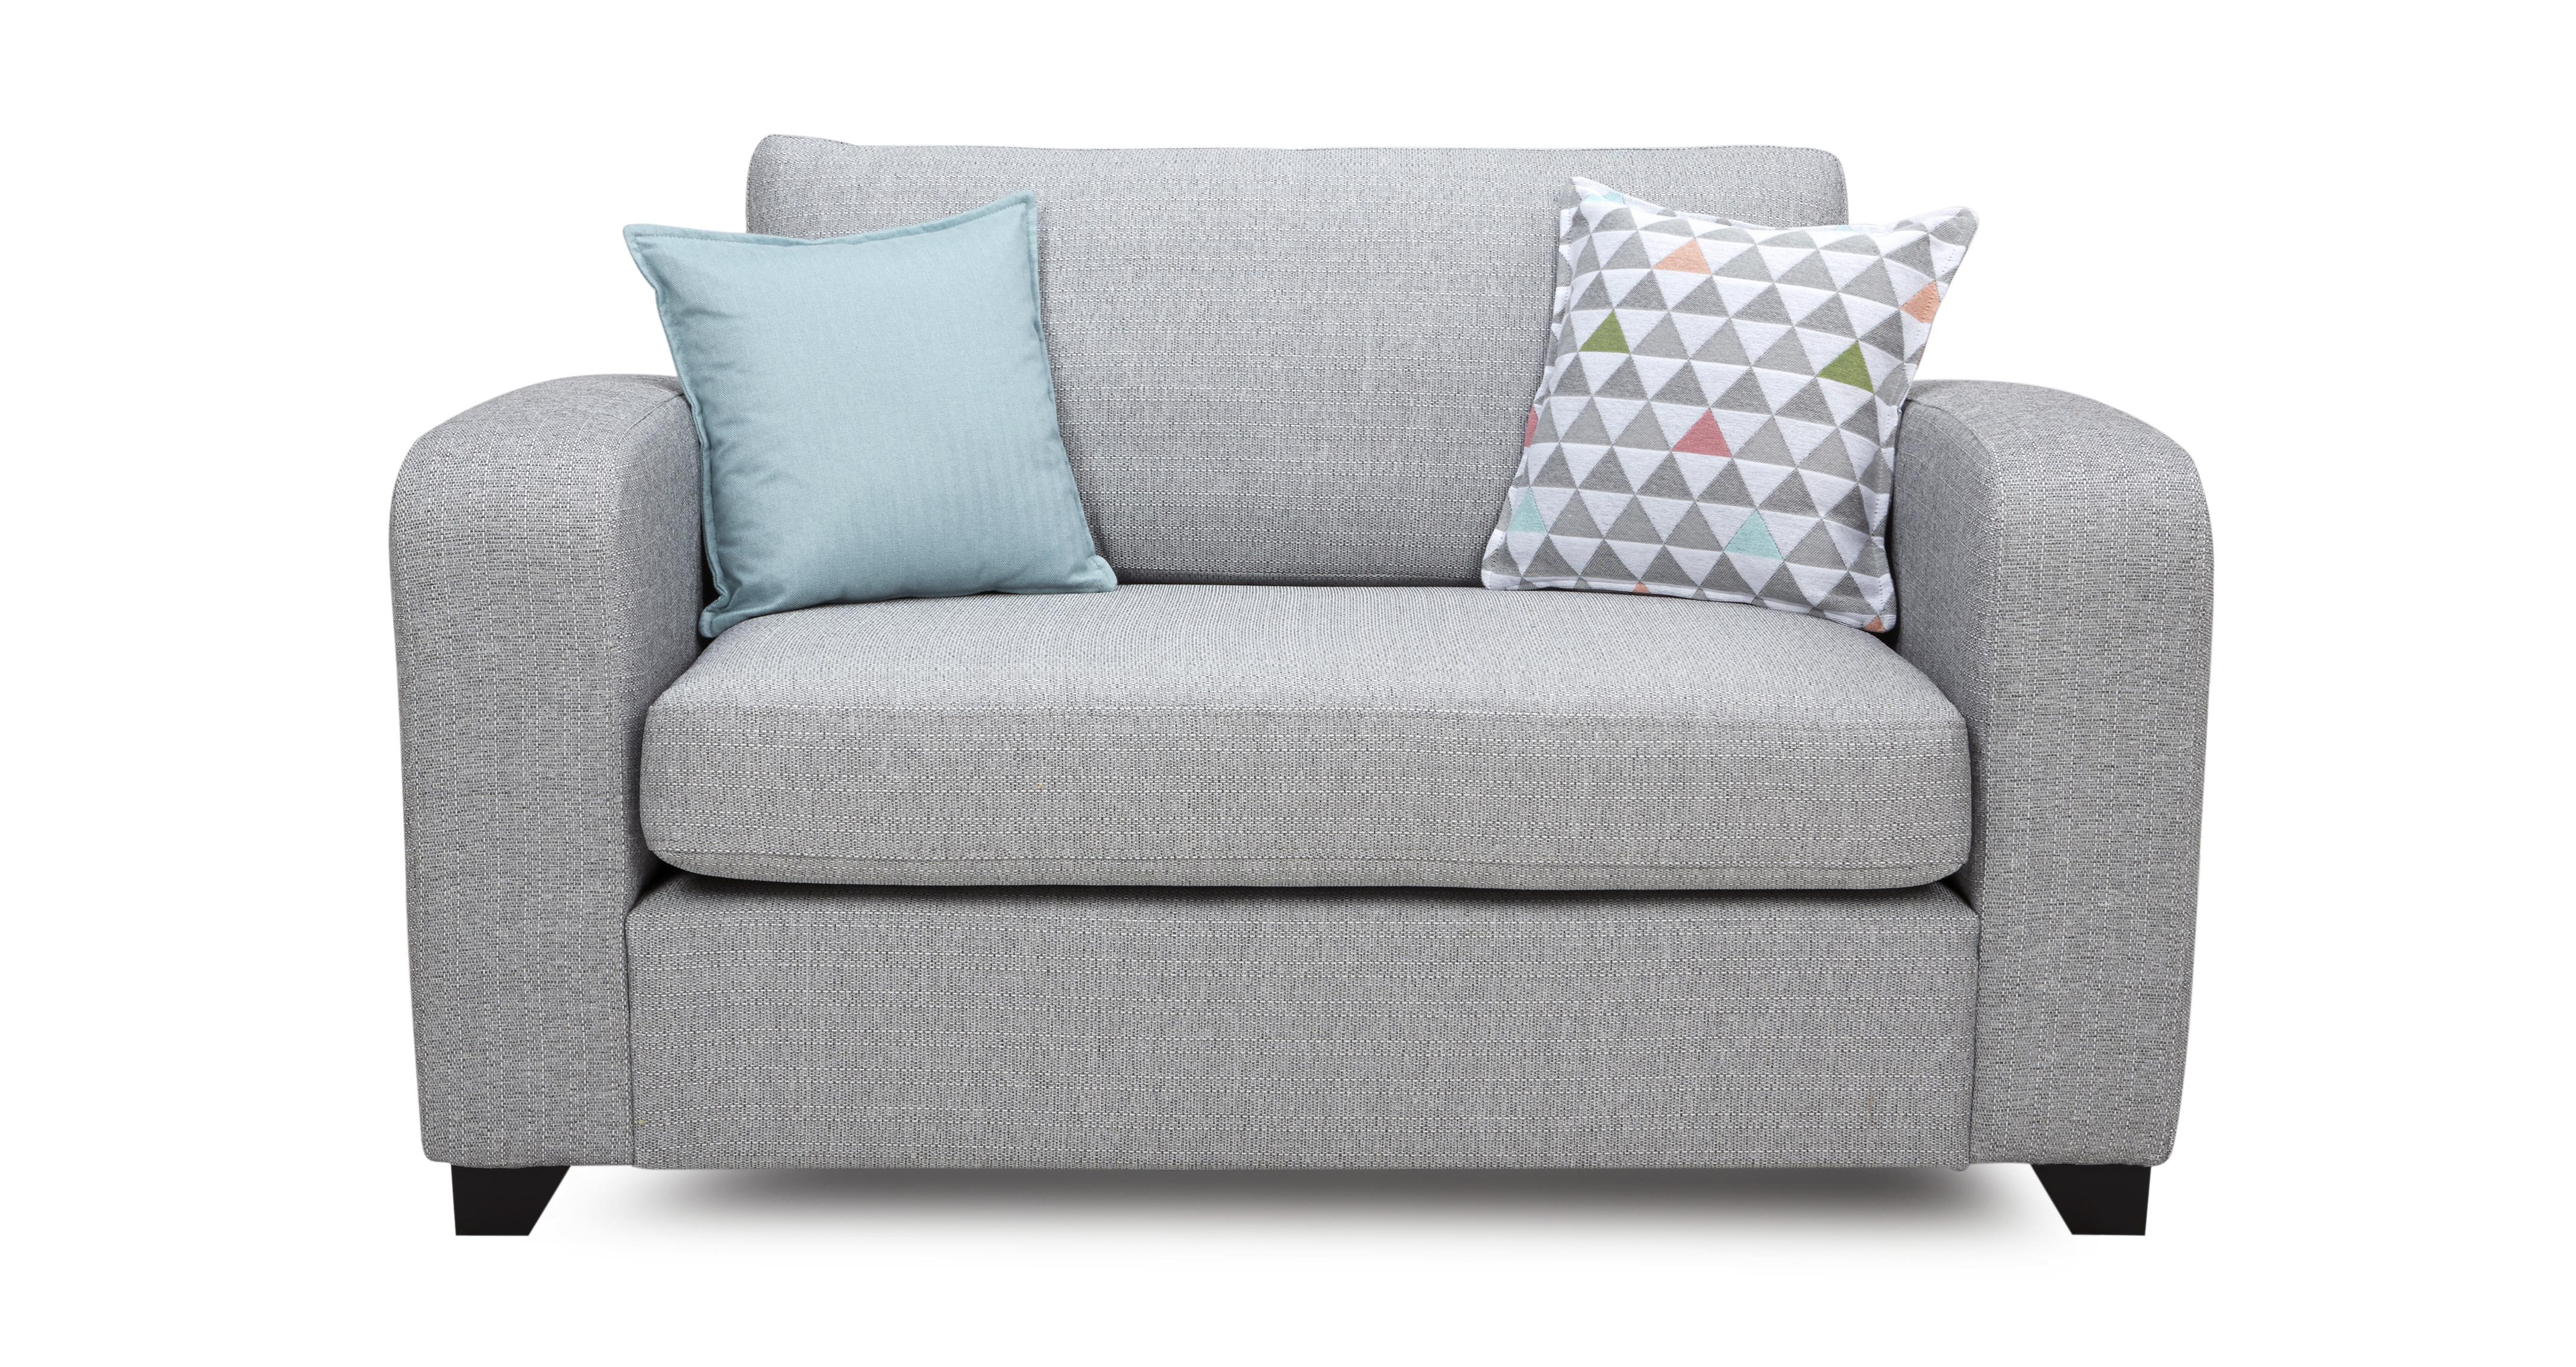 stylish affordable sofas uk cheap london lydia cuddler sofa dfs ireland